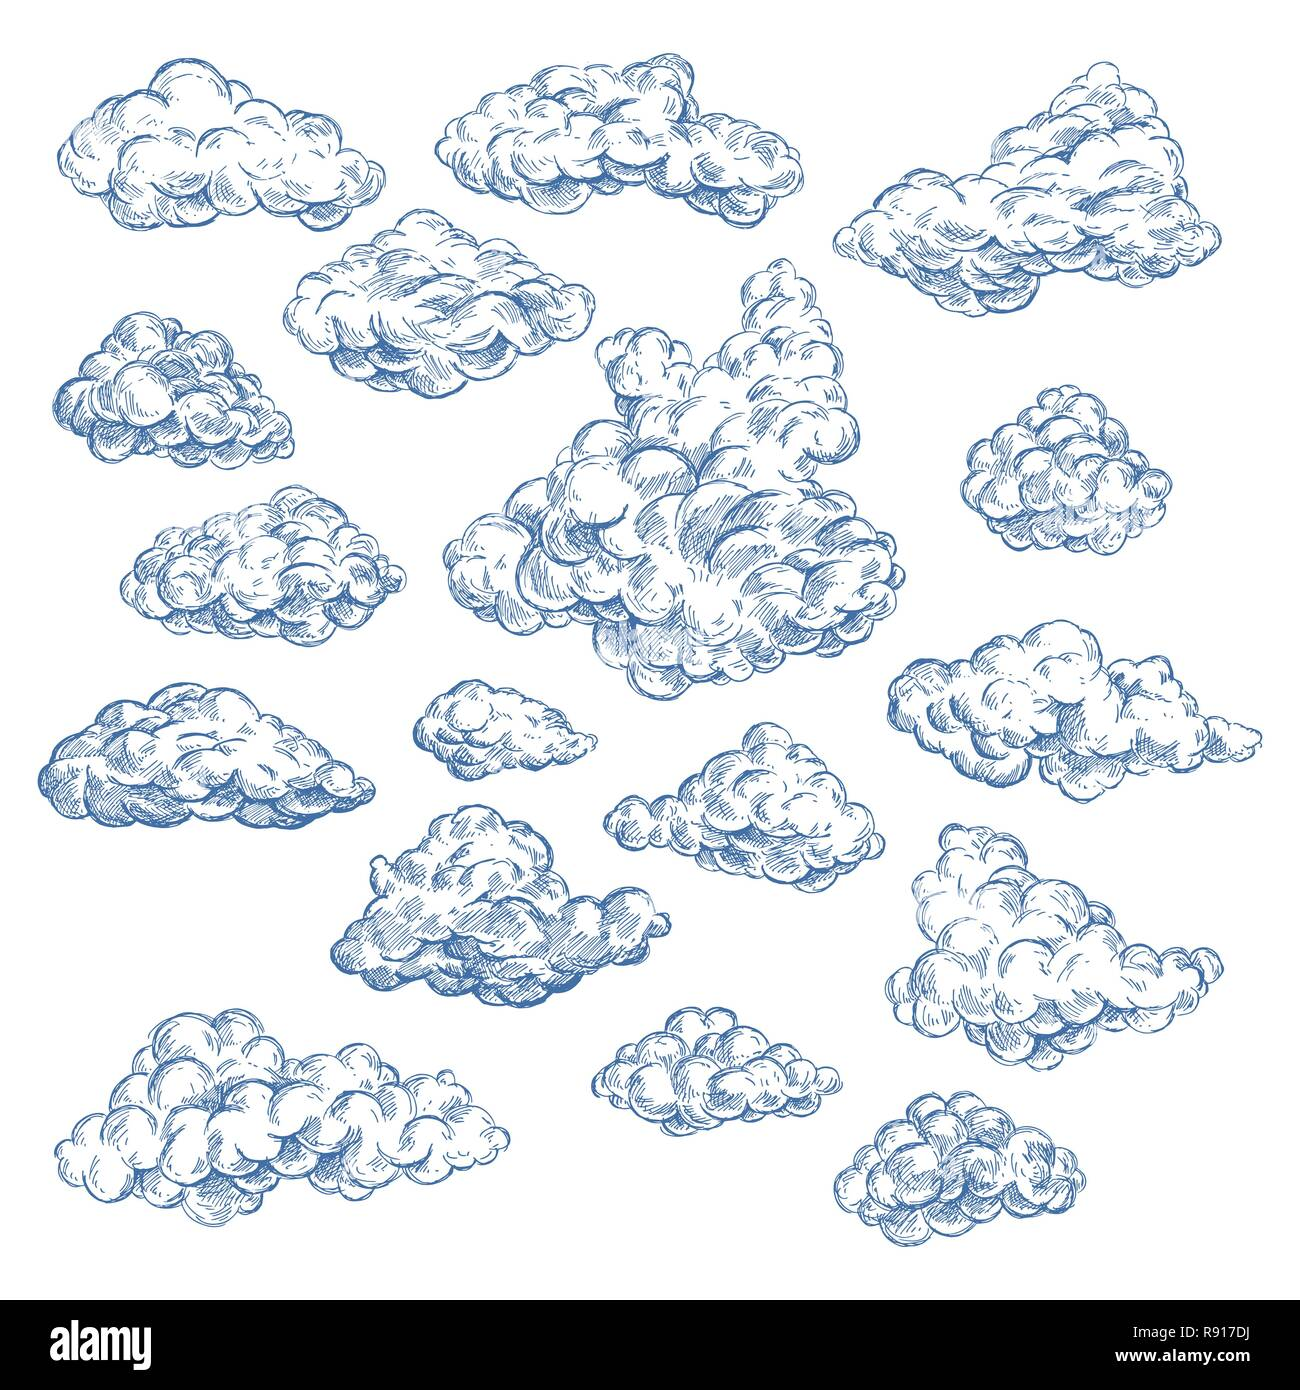 Sky sketch with white clouds. Atmosphere, heaven. - Stock Image